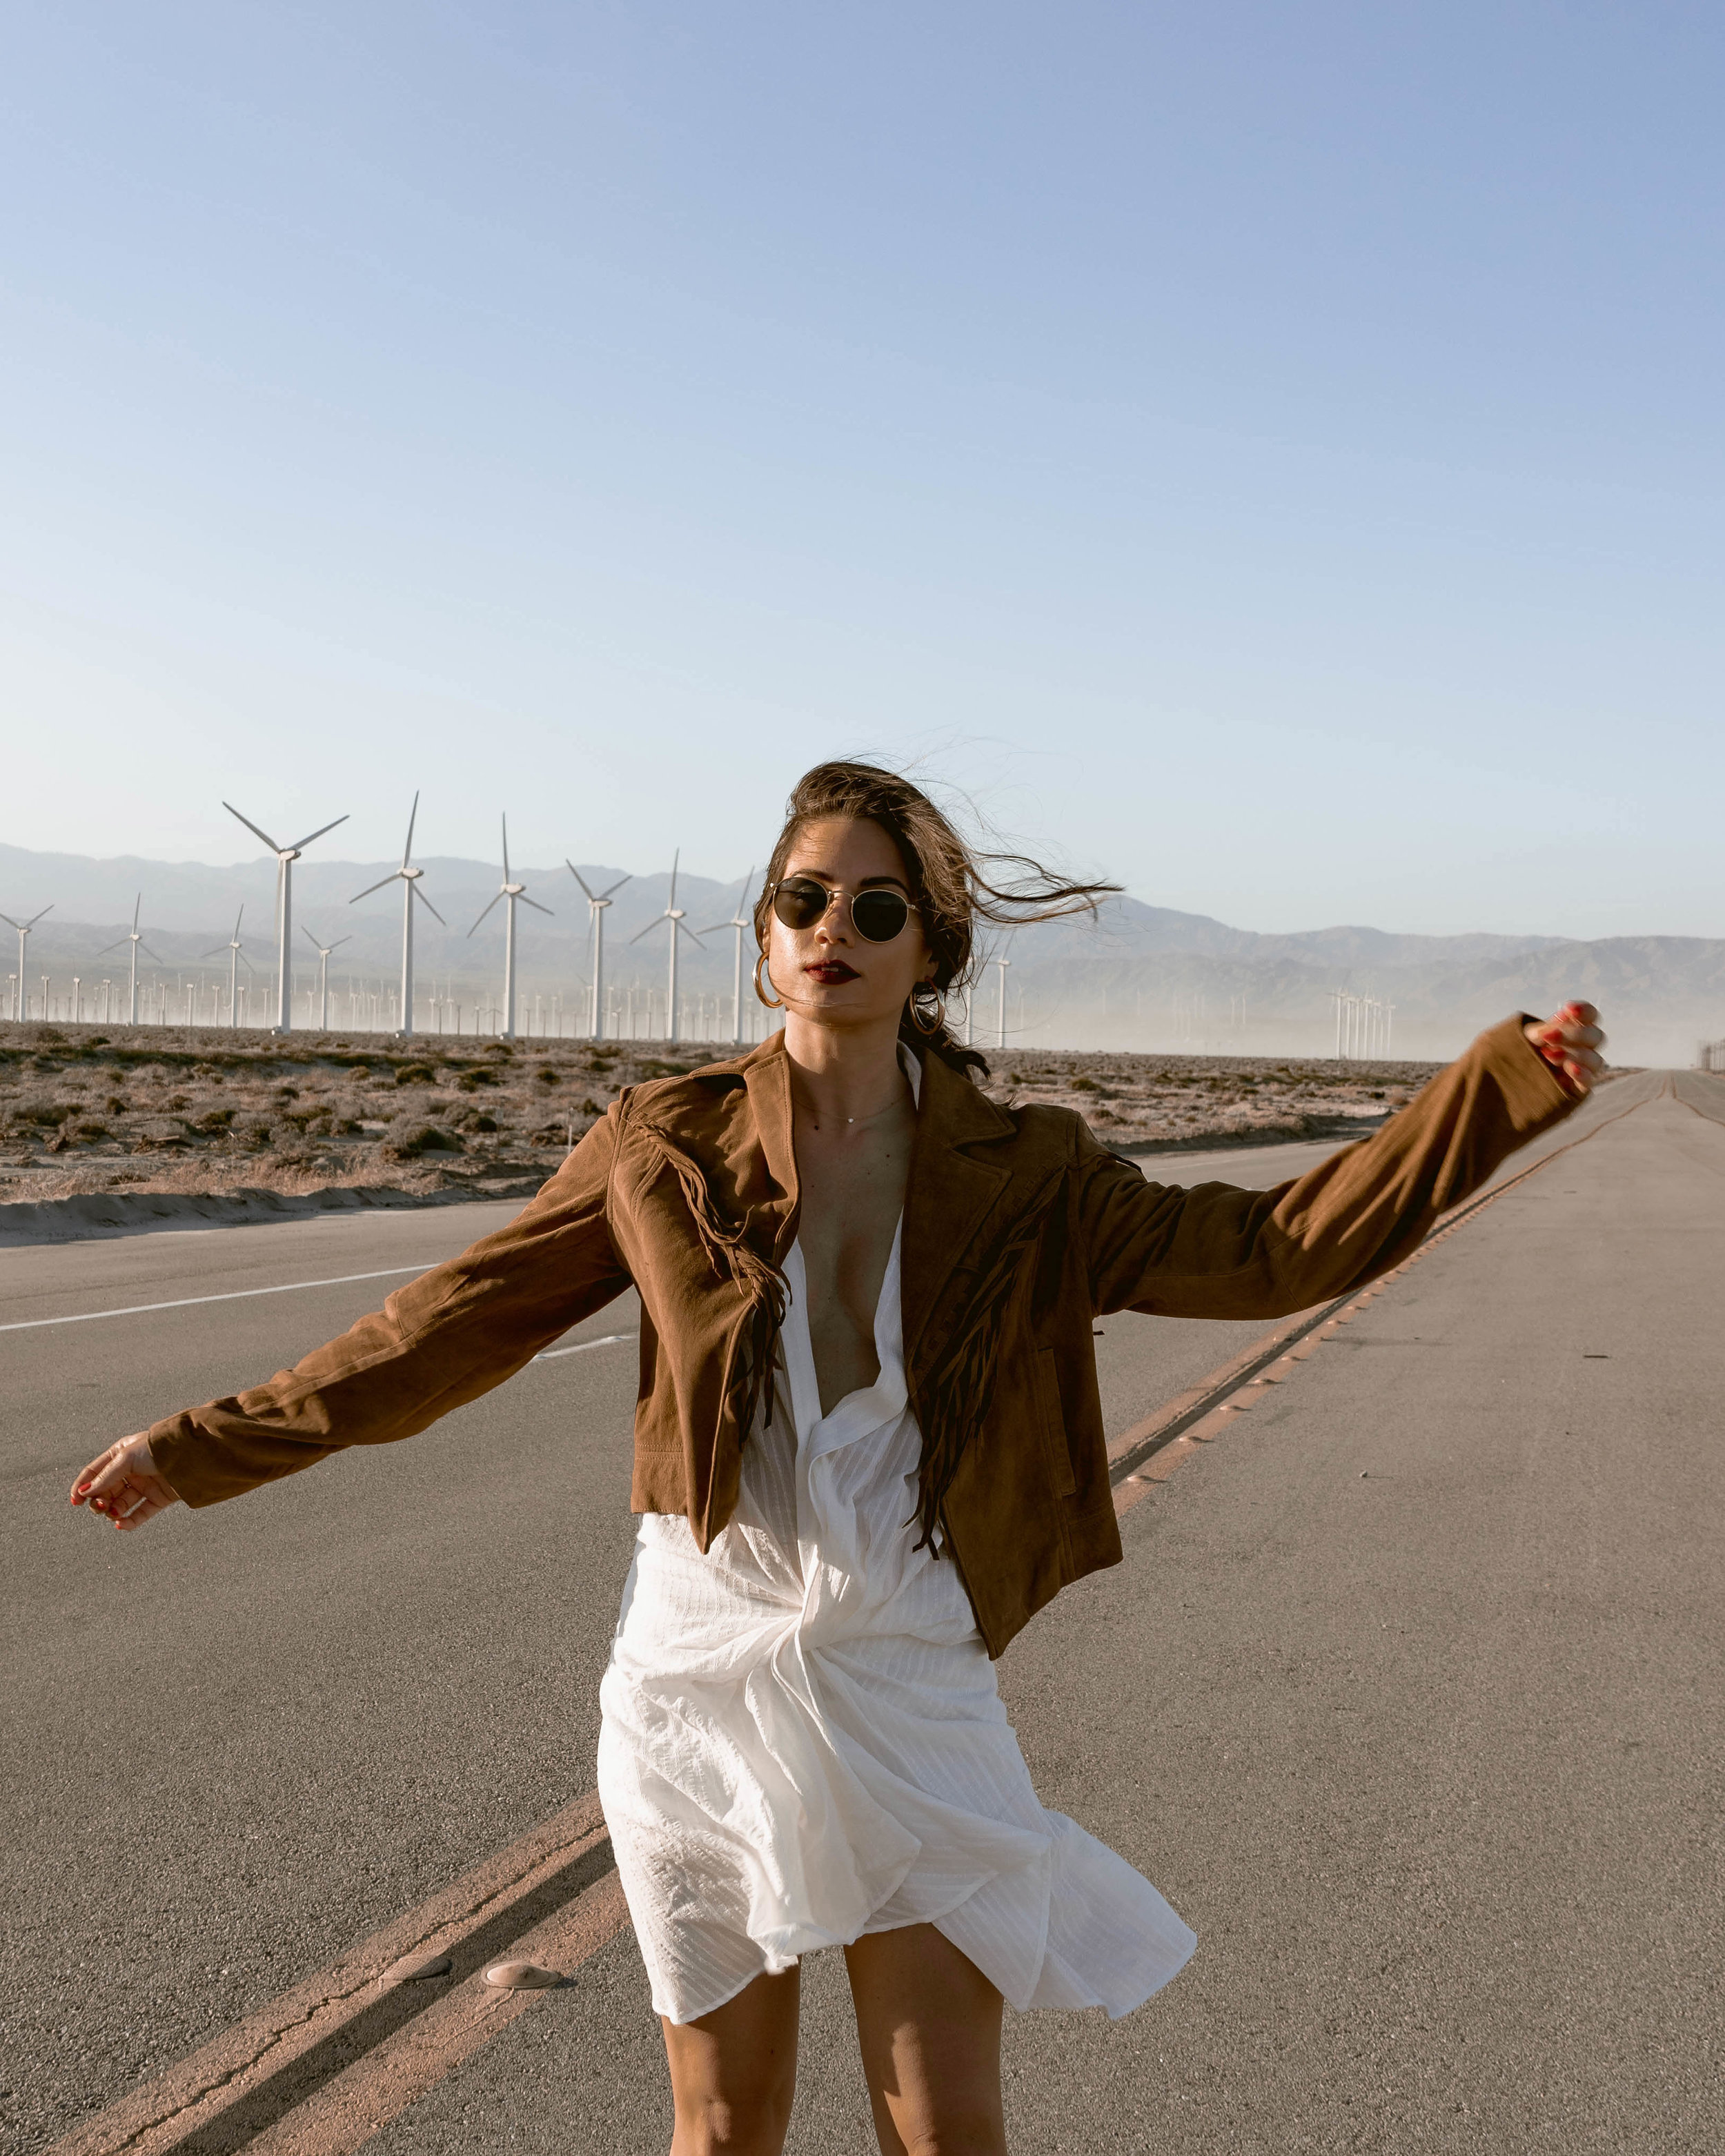 Festival Fringe - Jacquemus Alassio draped white cotton mini dress, Paige Darlene fringed suede jacket and Paige suede western boot in Palm Springs for Coachella festival outfit